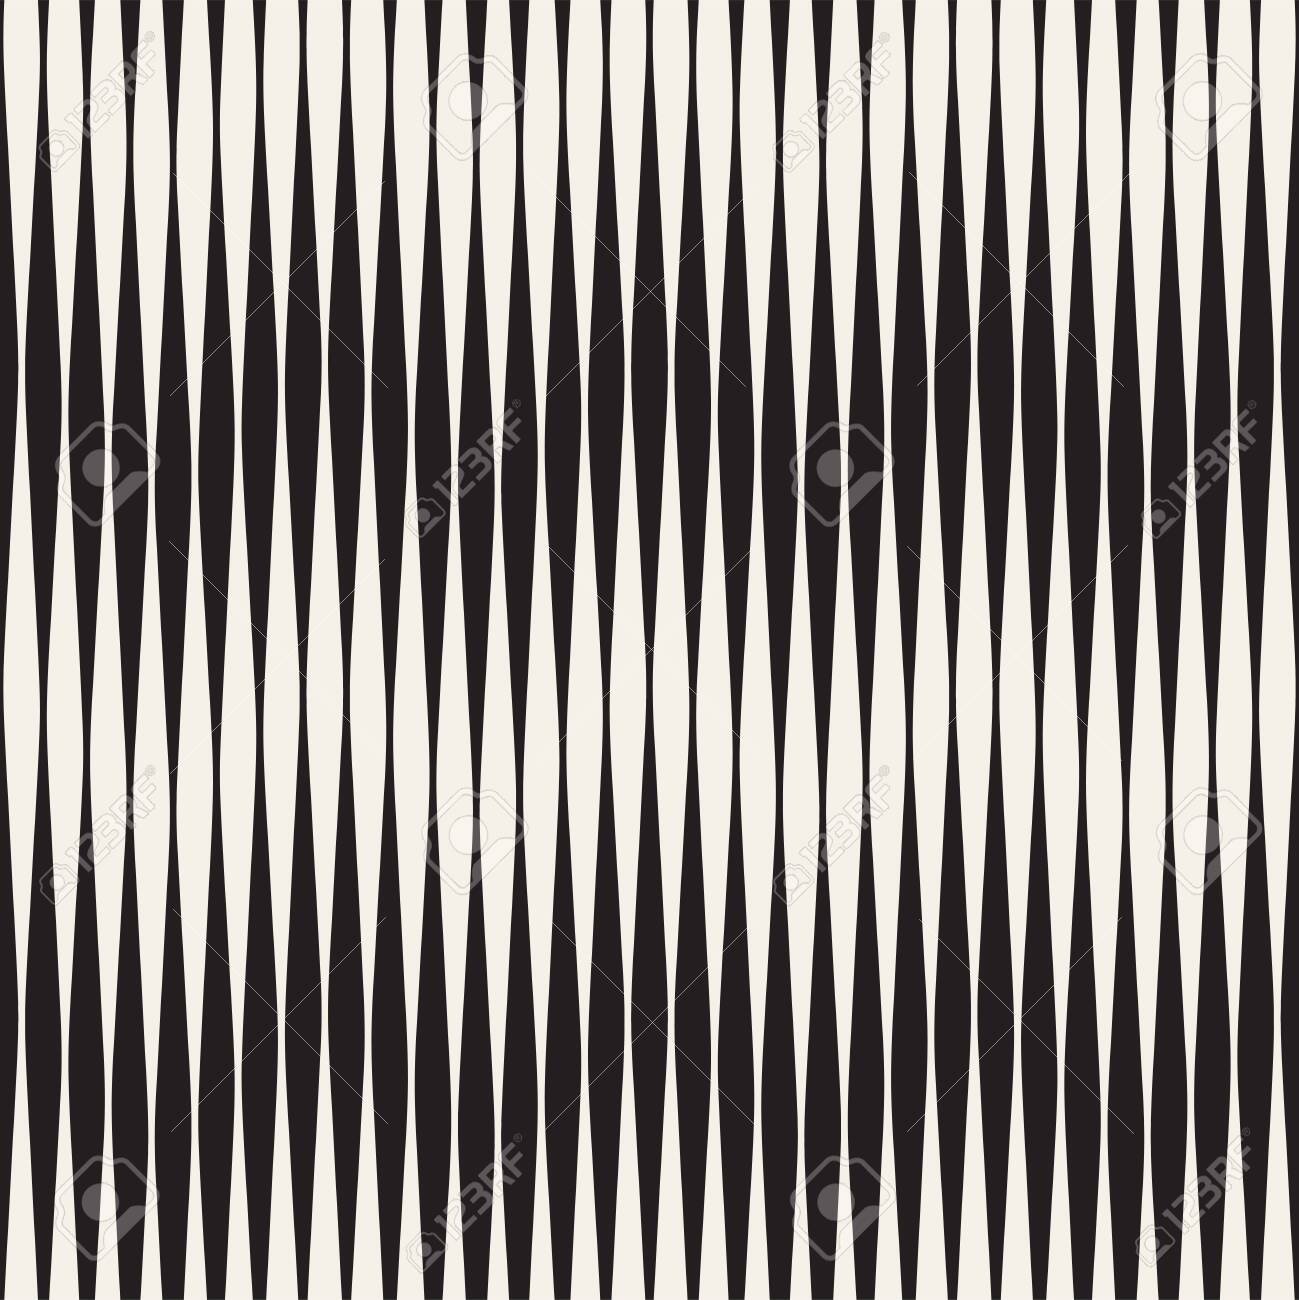 Seamless ripple pattern. Repeating vector texture. Wavy graphic background. Simple wave stripes - 99081020